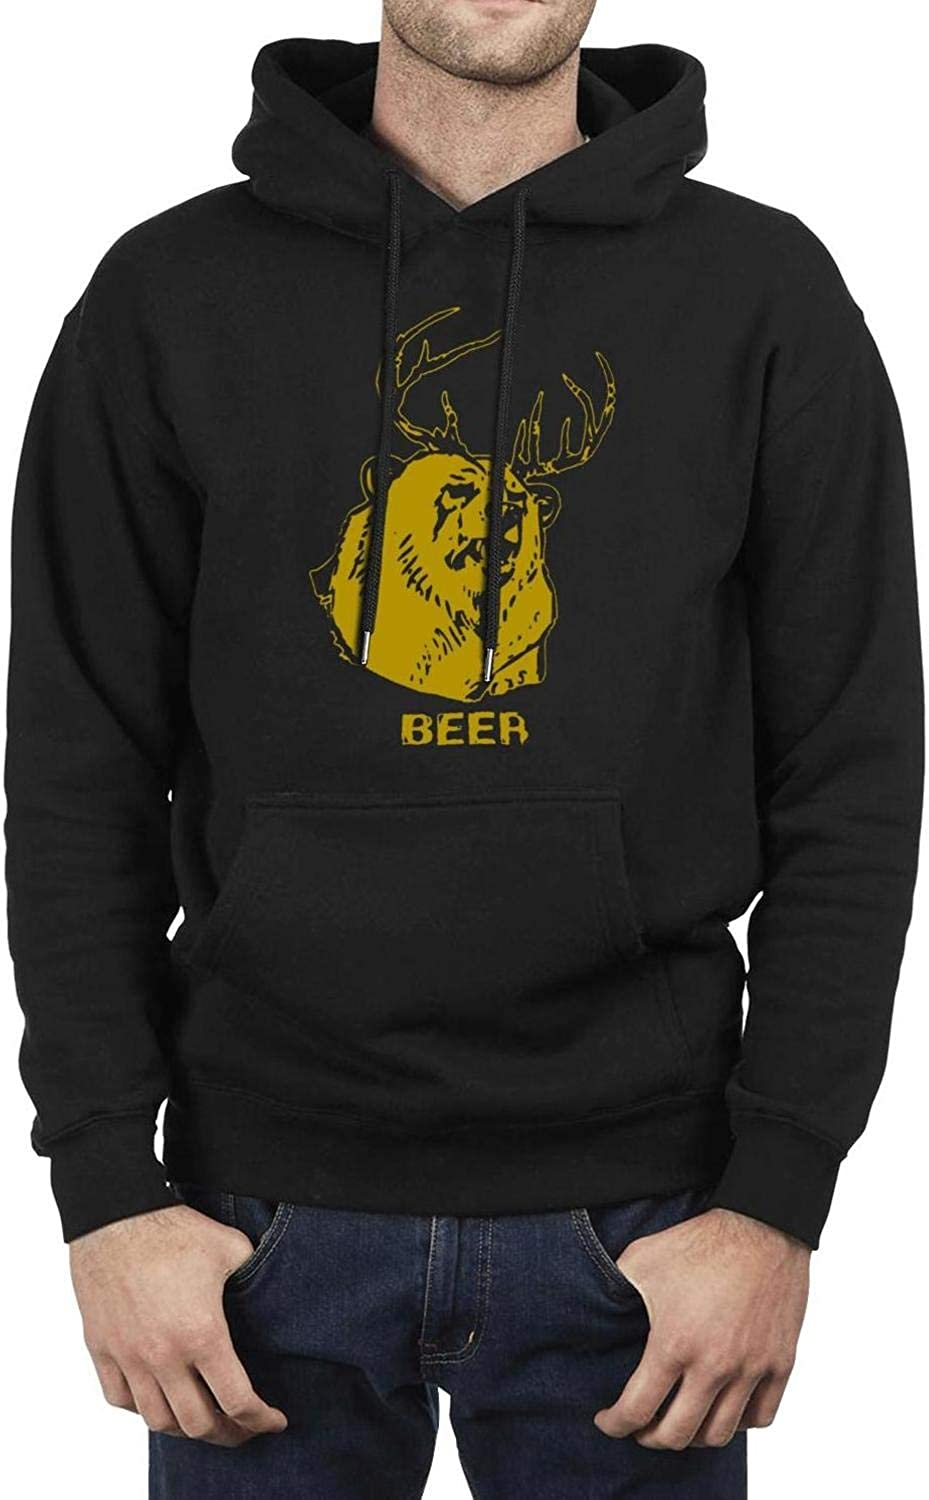 BingGuiC Mens Fleece Hoodie Deer Beer Logo Wool Warm Soft Winter Gift Pullover Hooded Sweatshirt